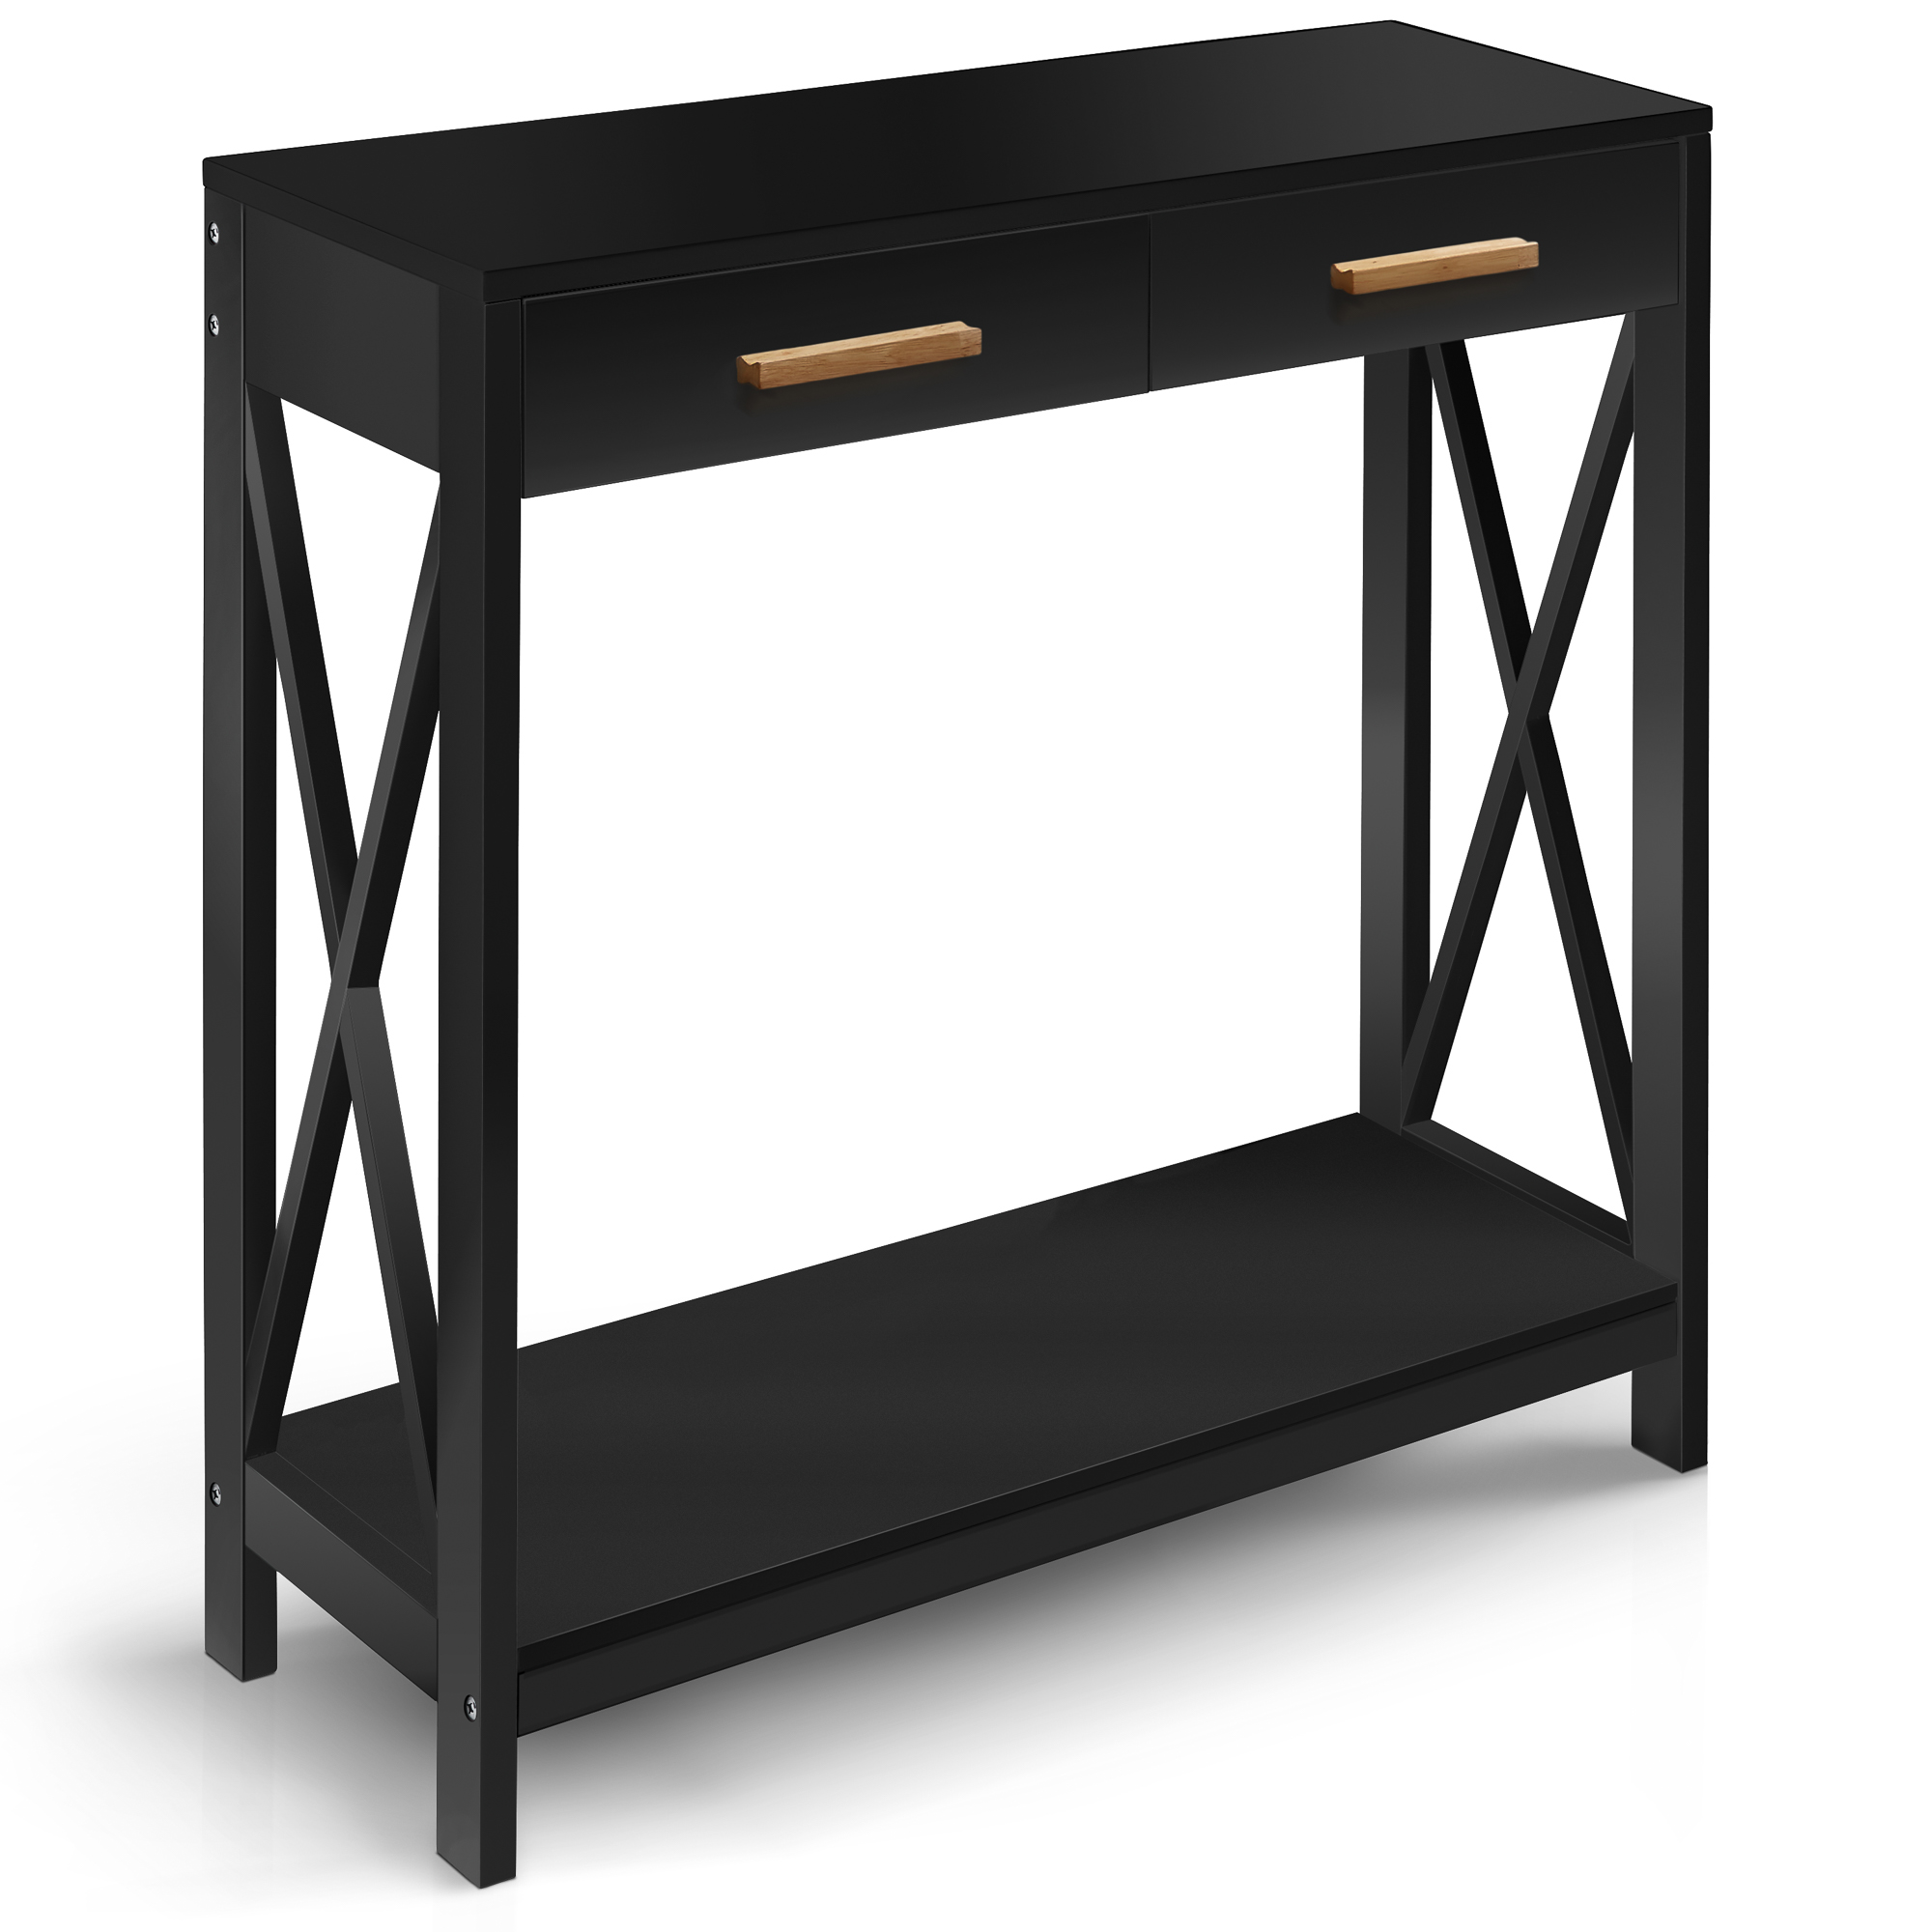 Prosumer's Choice Black Entryway Console For Home Or